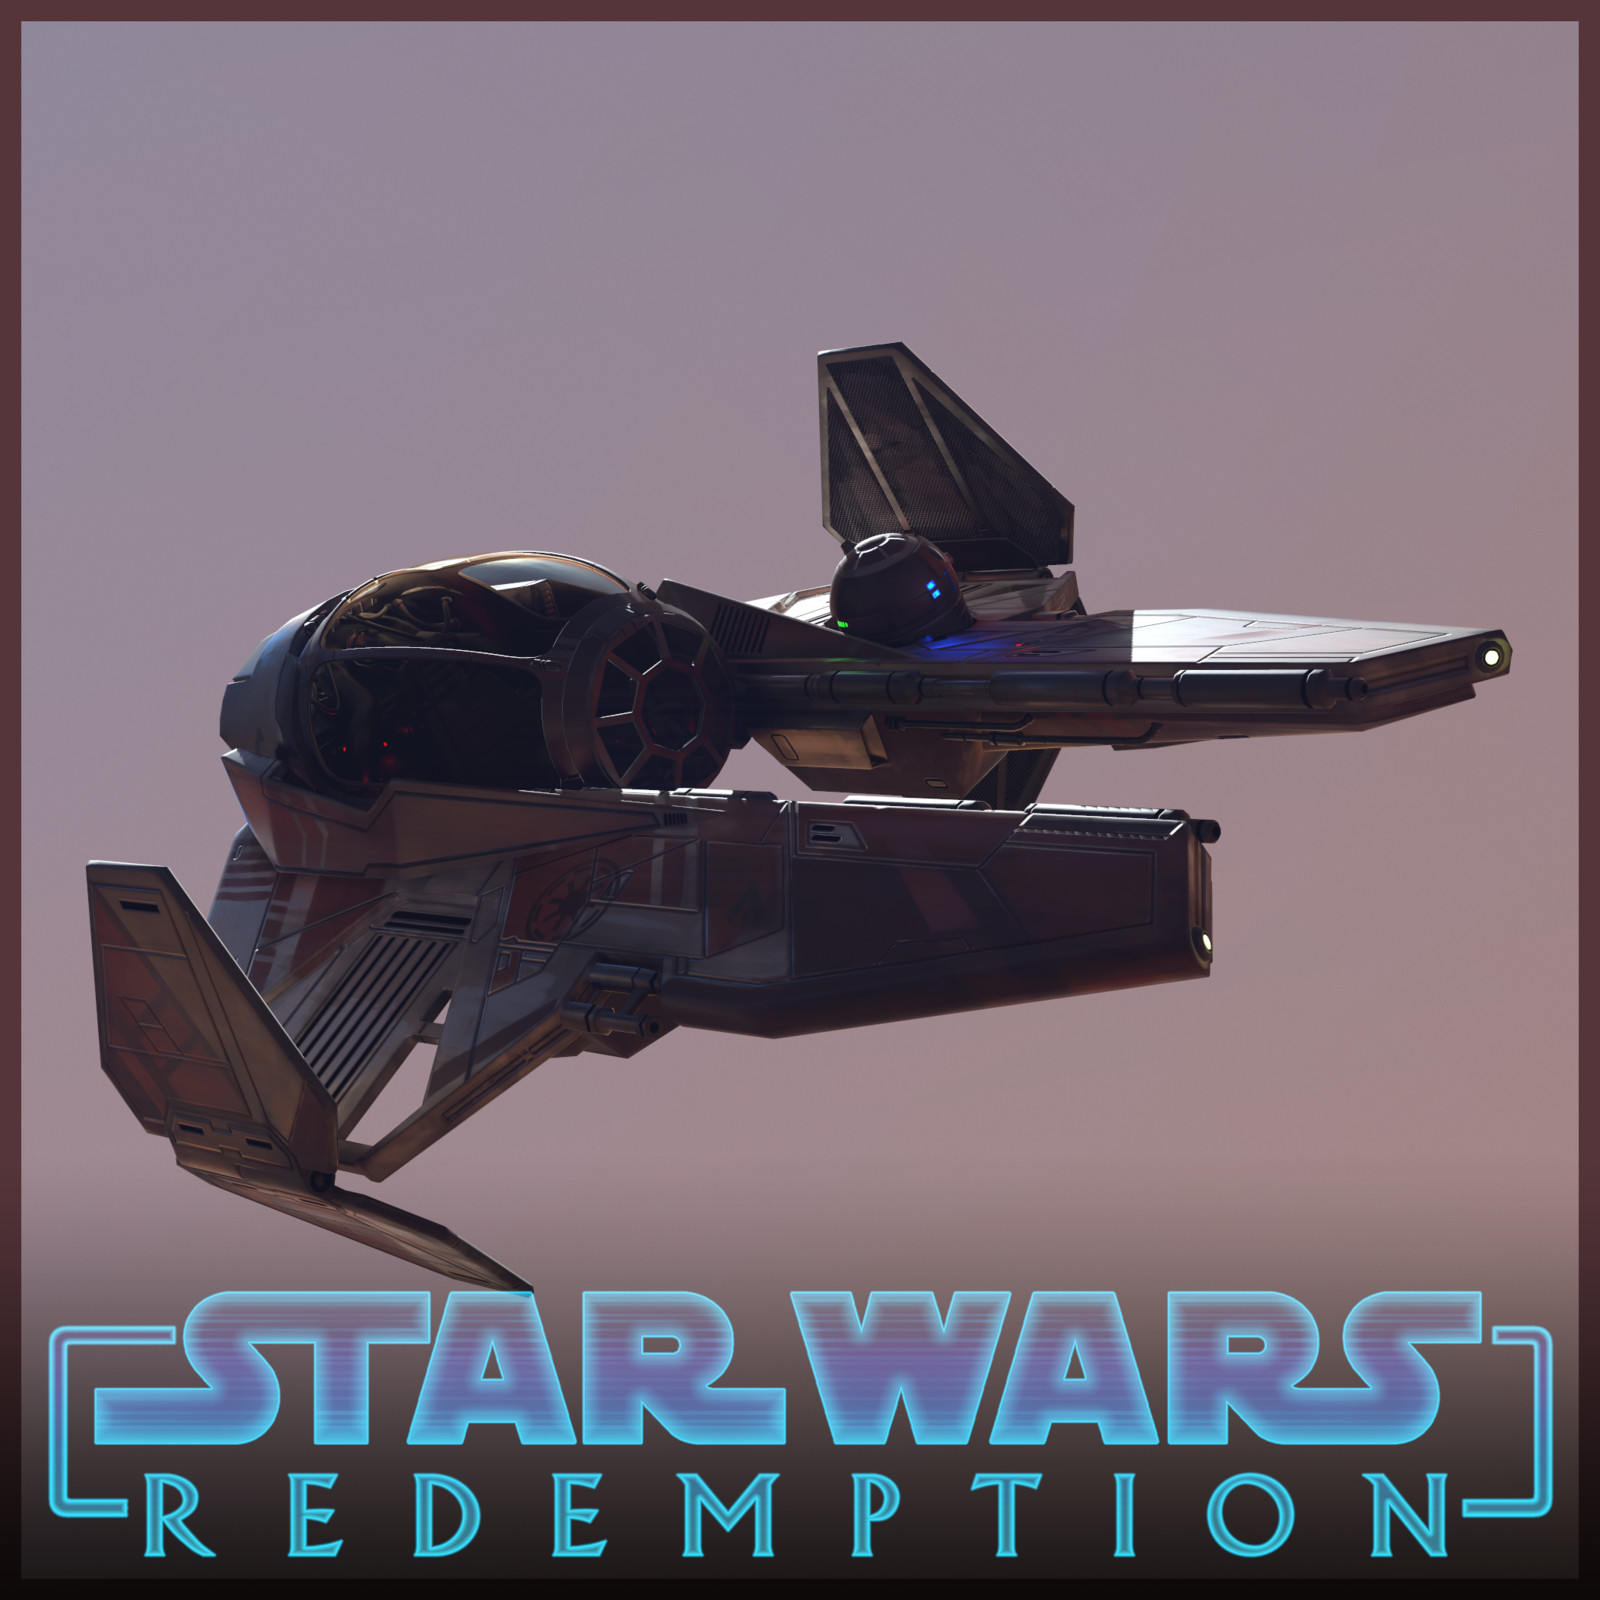 Star Wars - Redemption | Mevenn's Starfighter Eta 2 - Actis